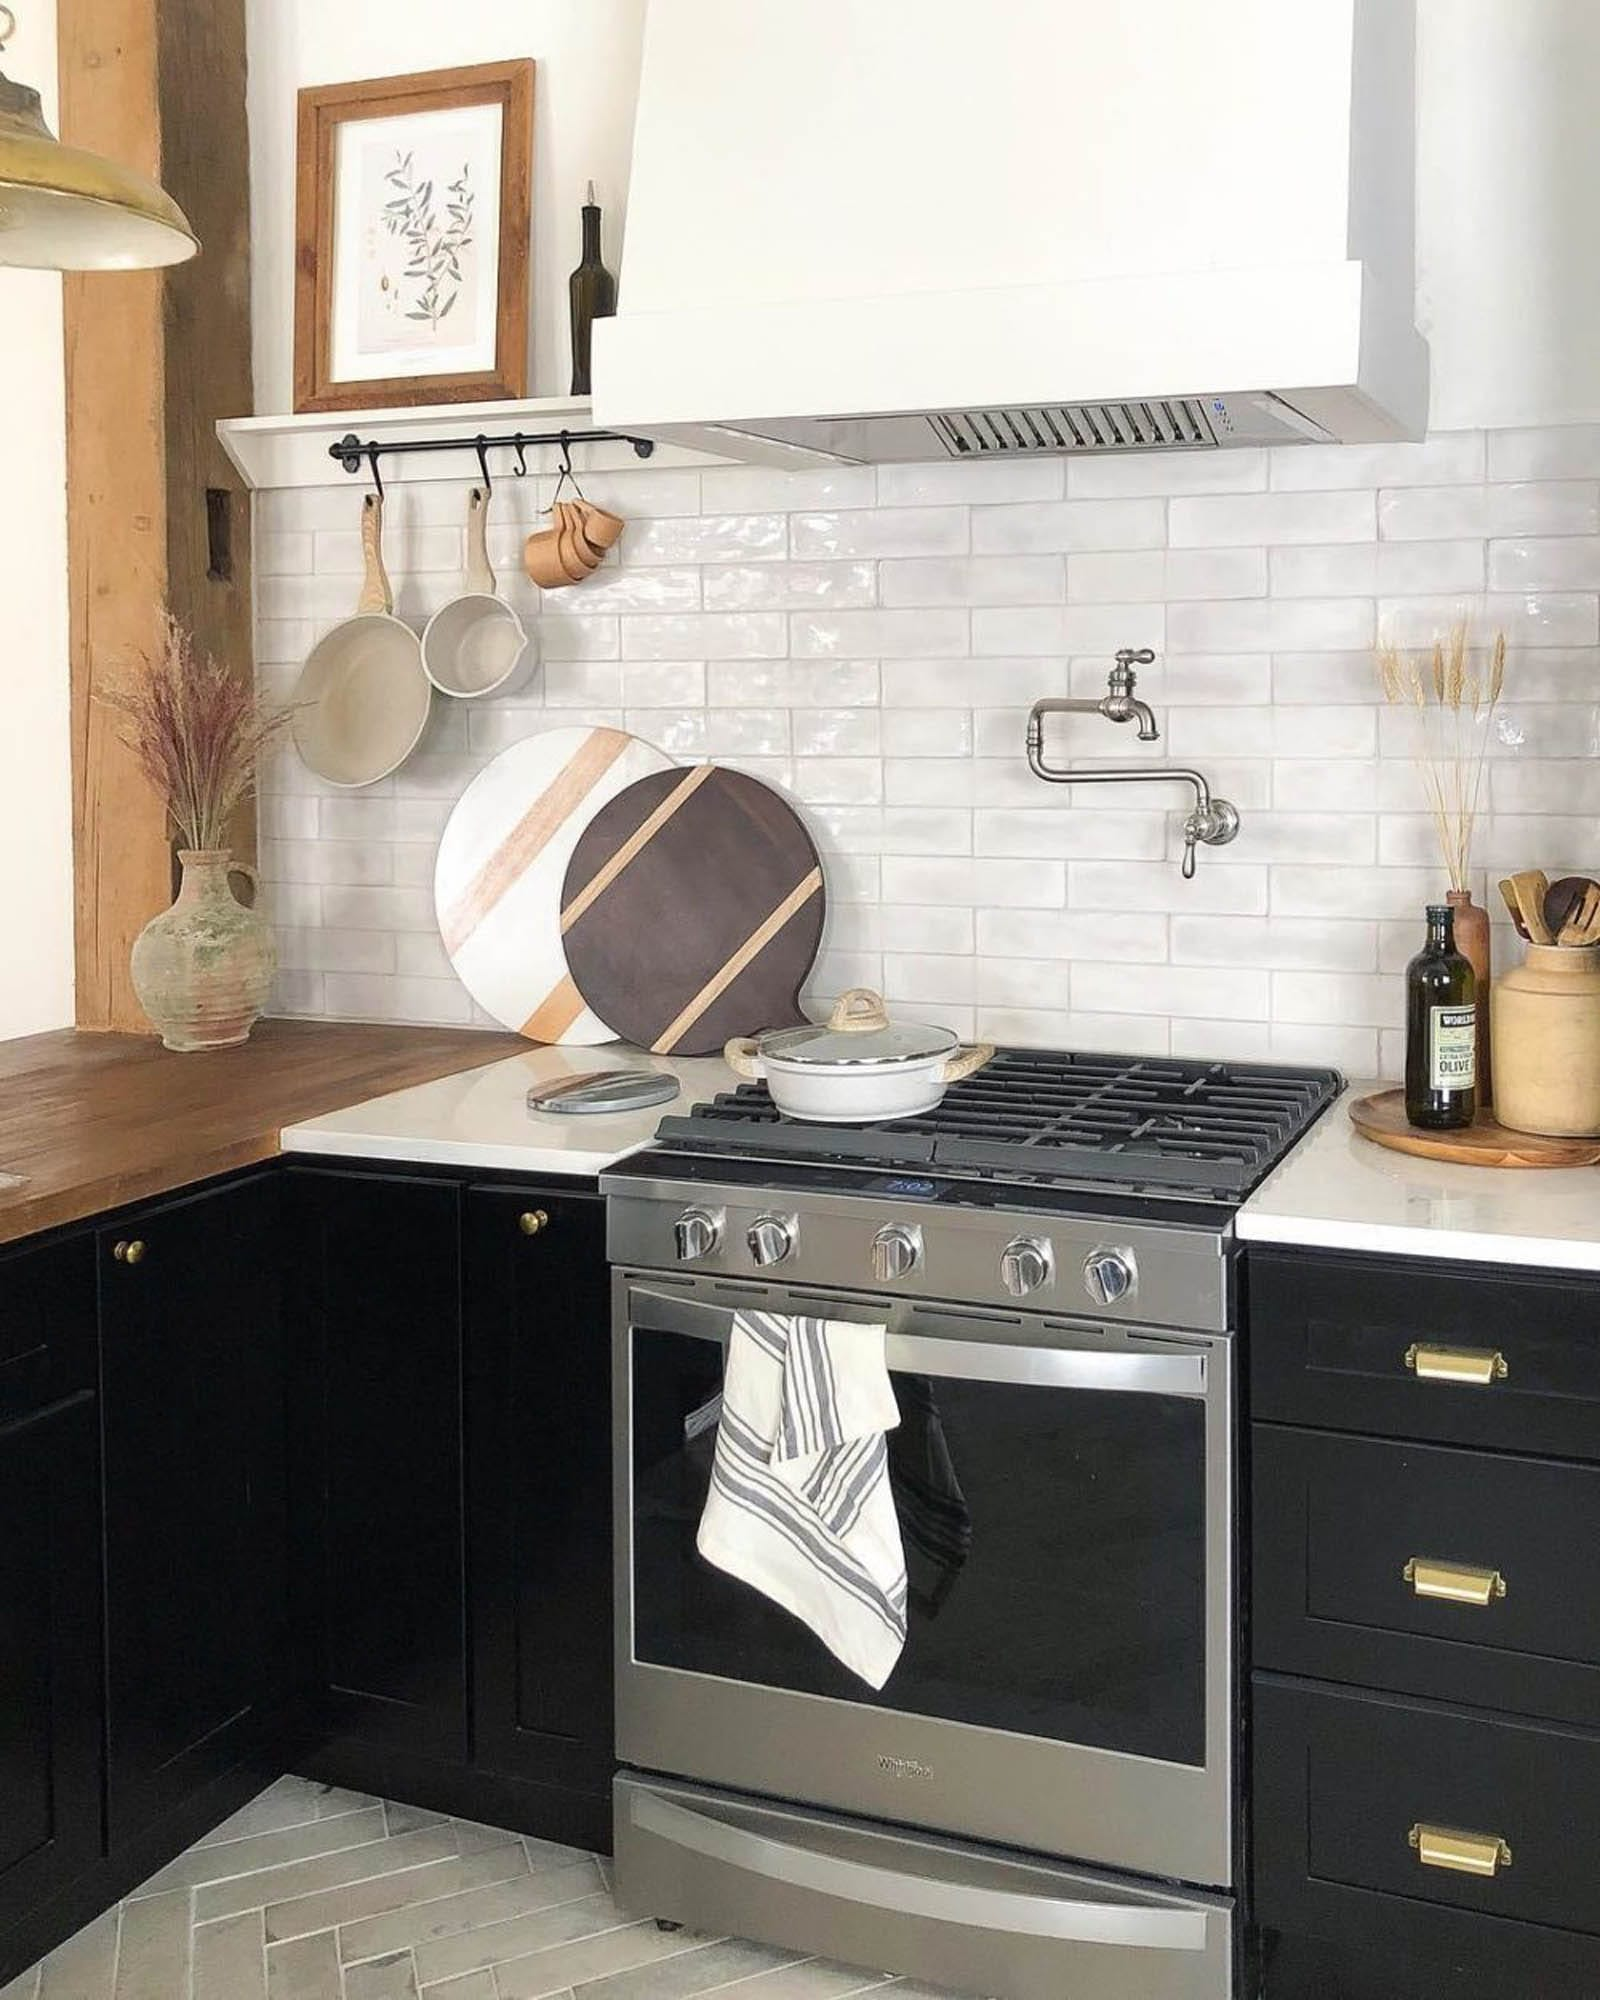 Glossy and matte grey subway tiles